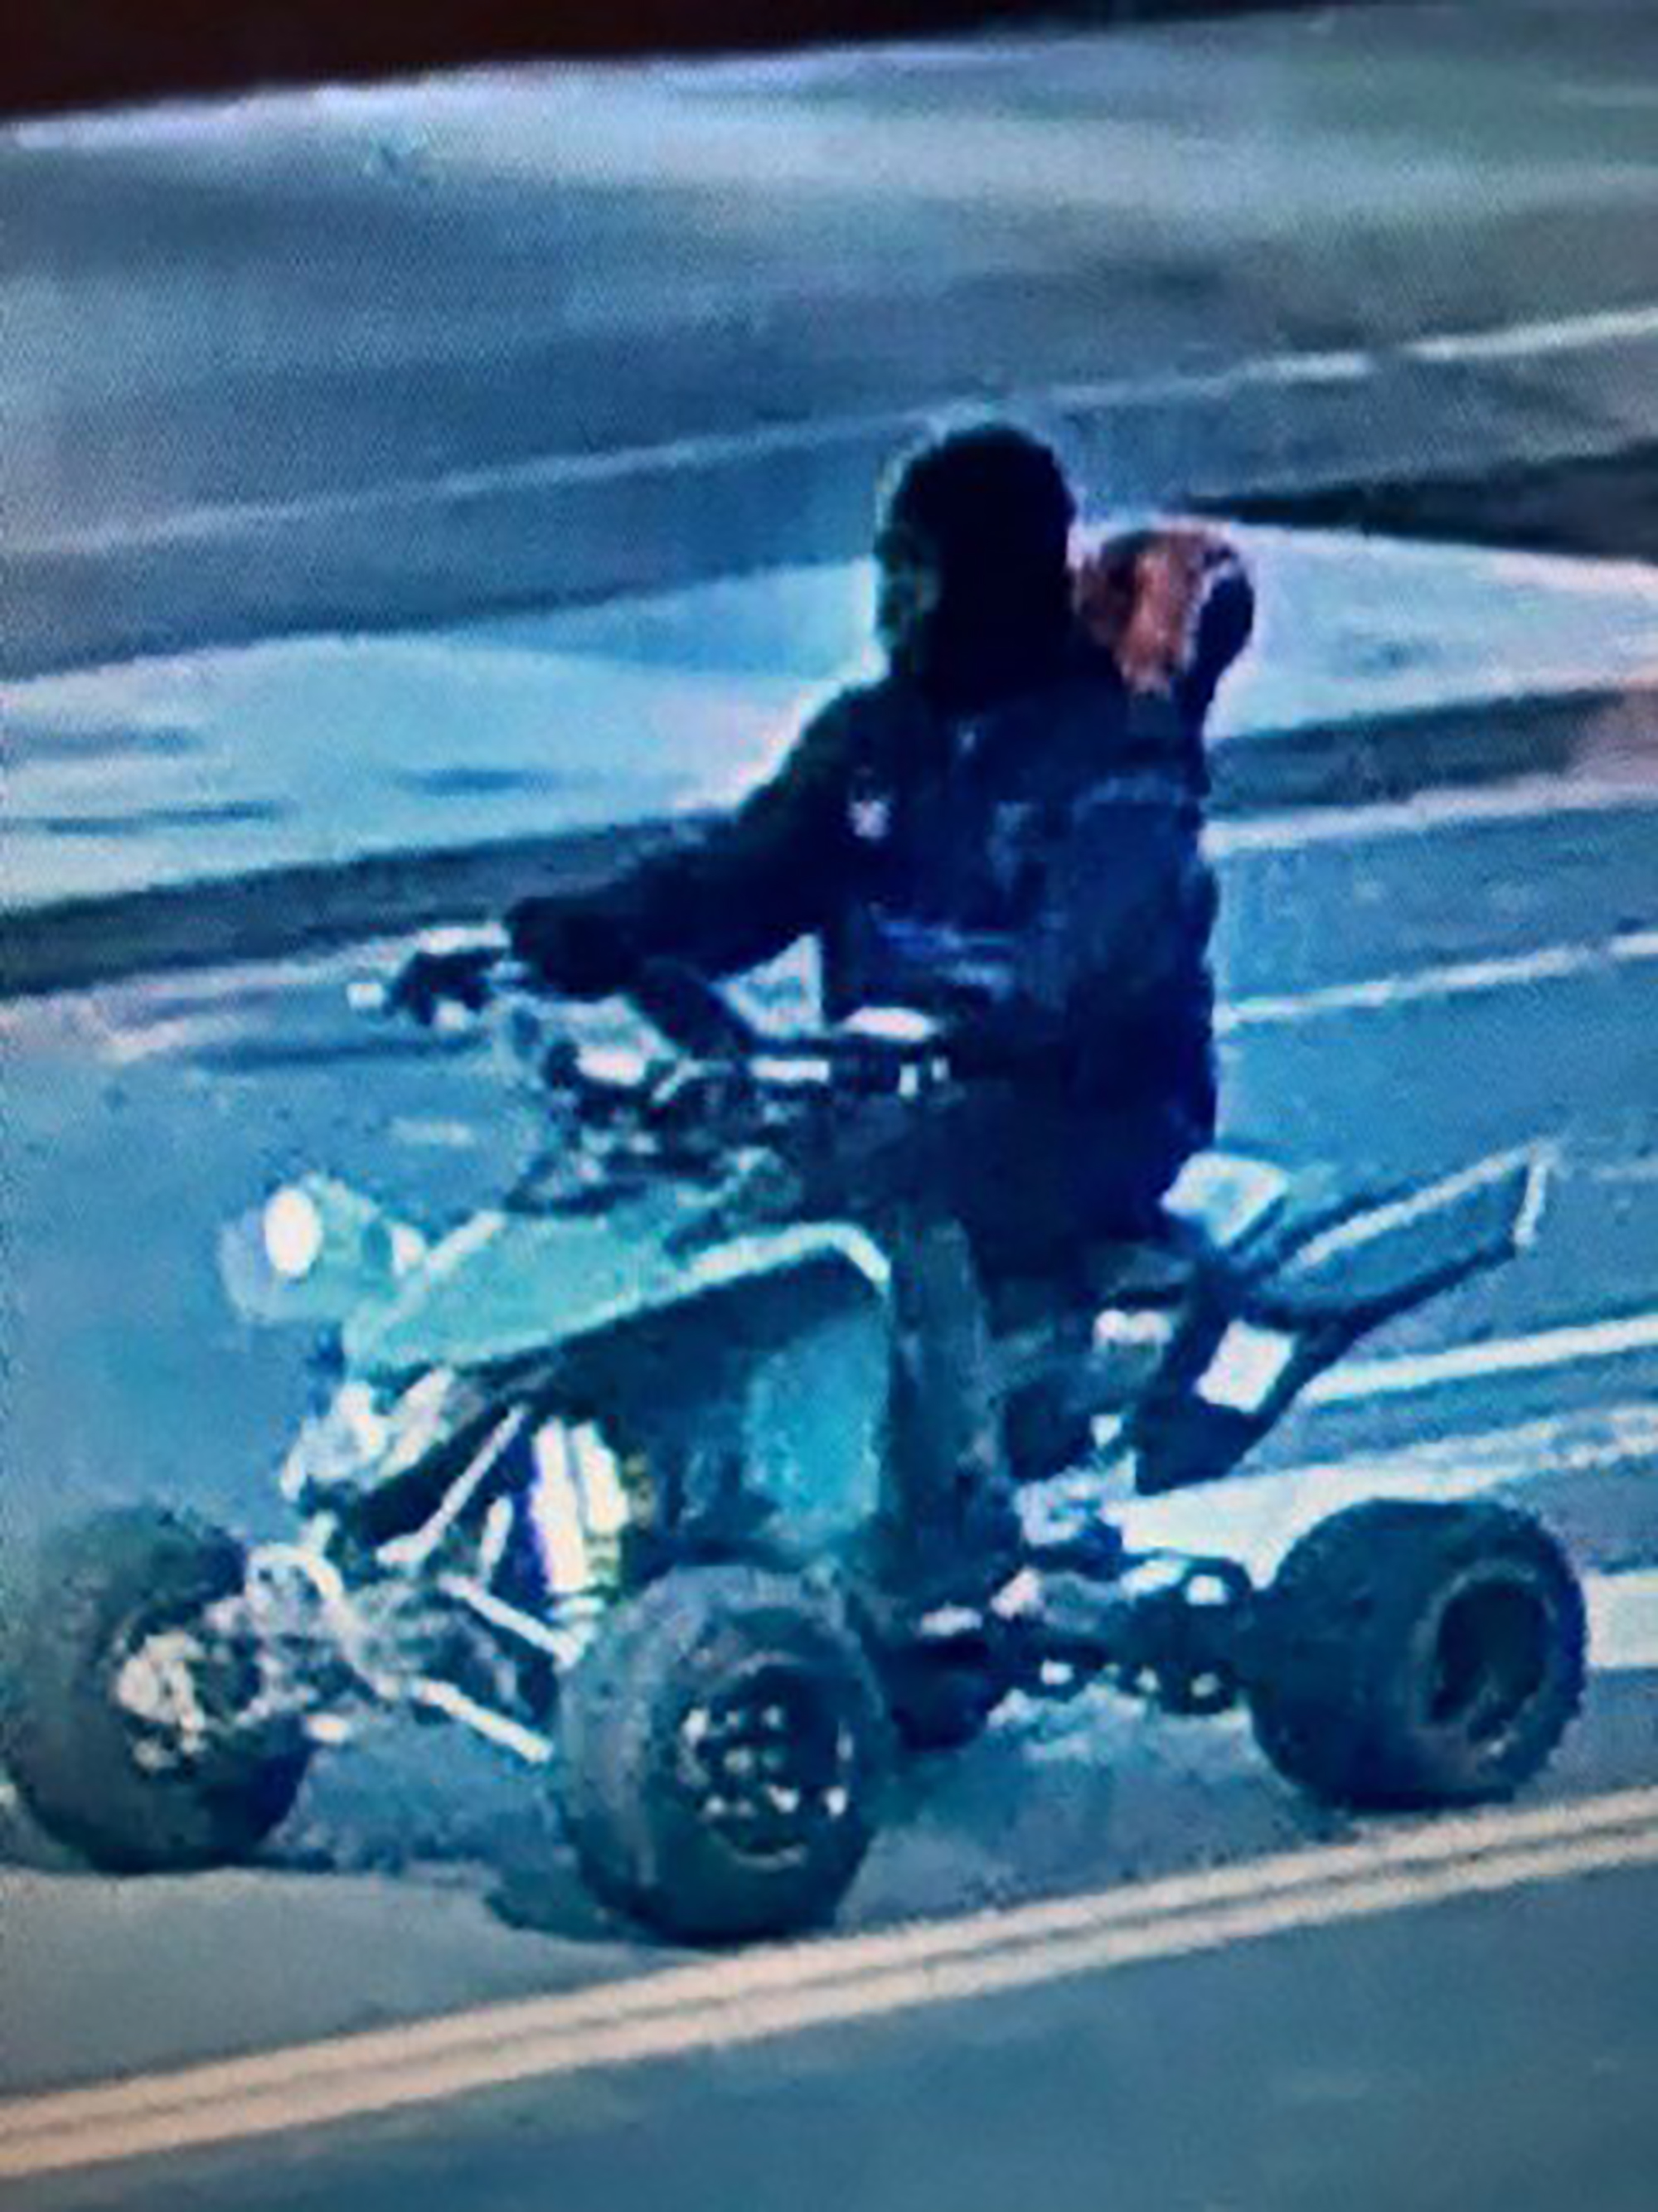 ATV driver drags police officer down busy street - CNN Video